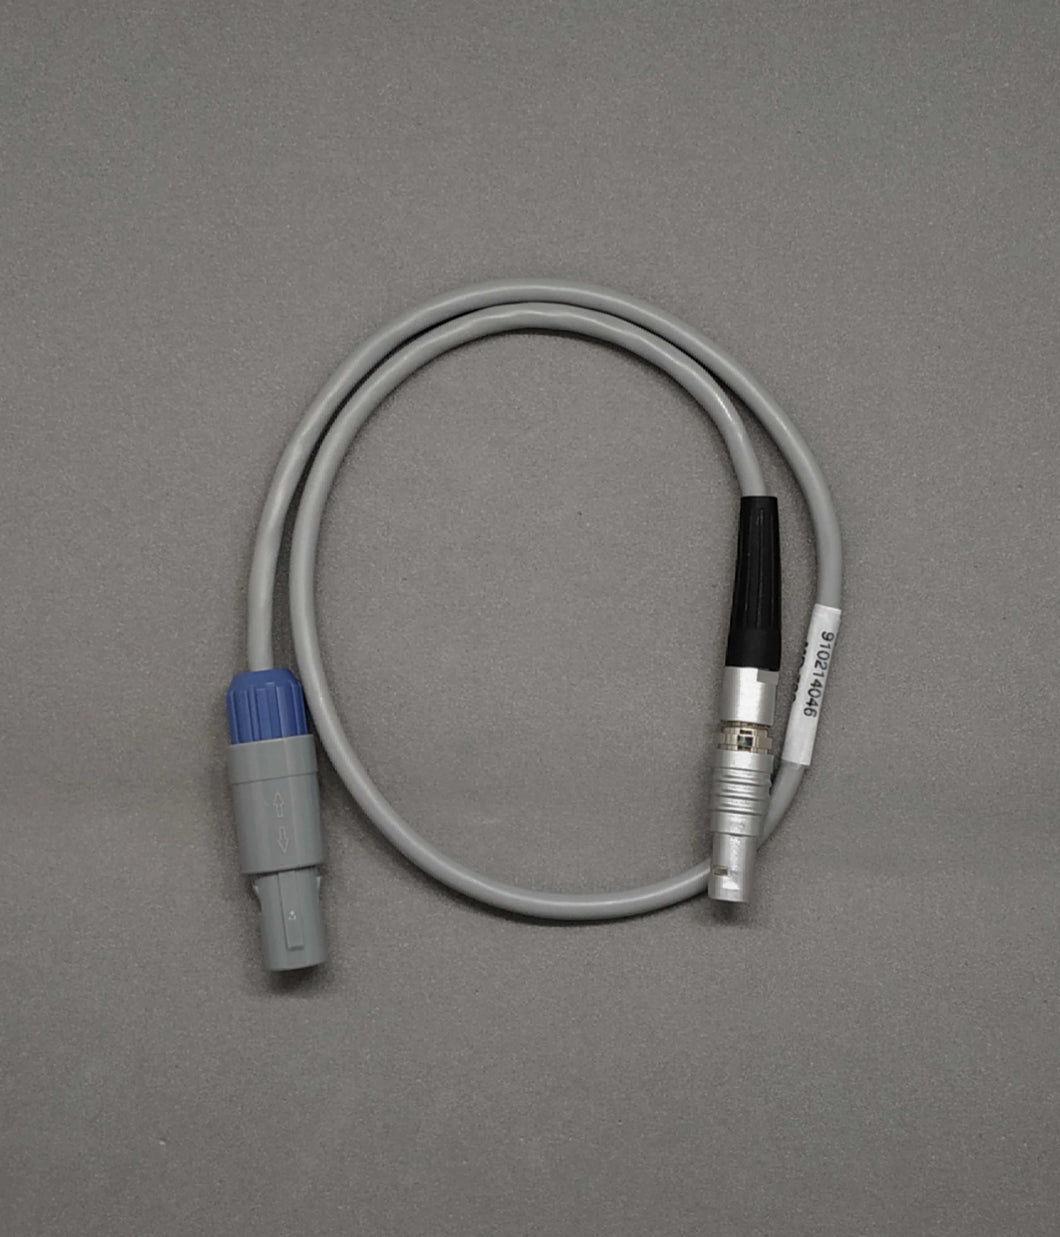 Reusable Single Heater Wire Adaptor Cable Compatible With MR730